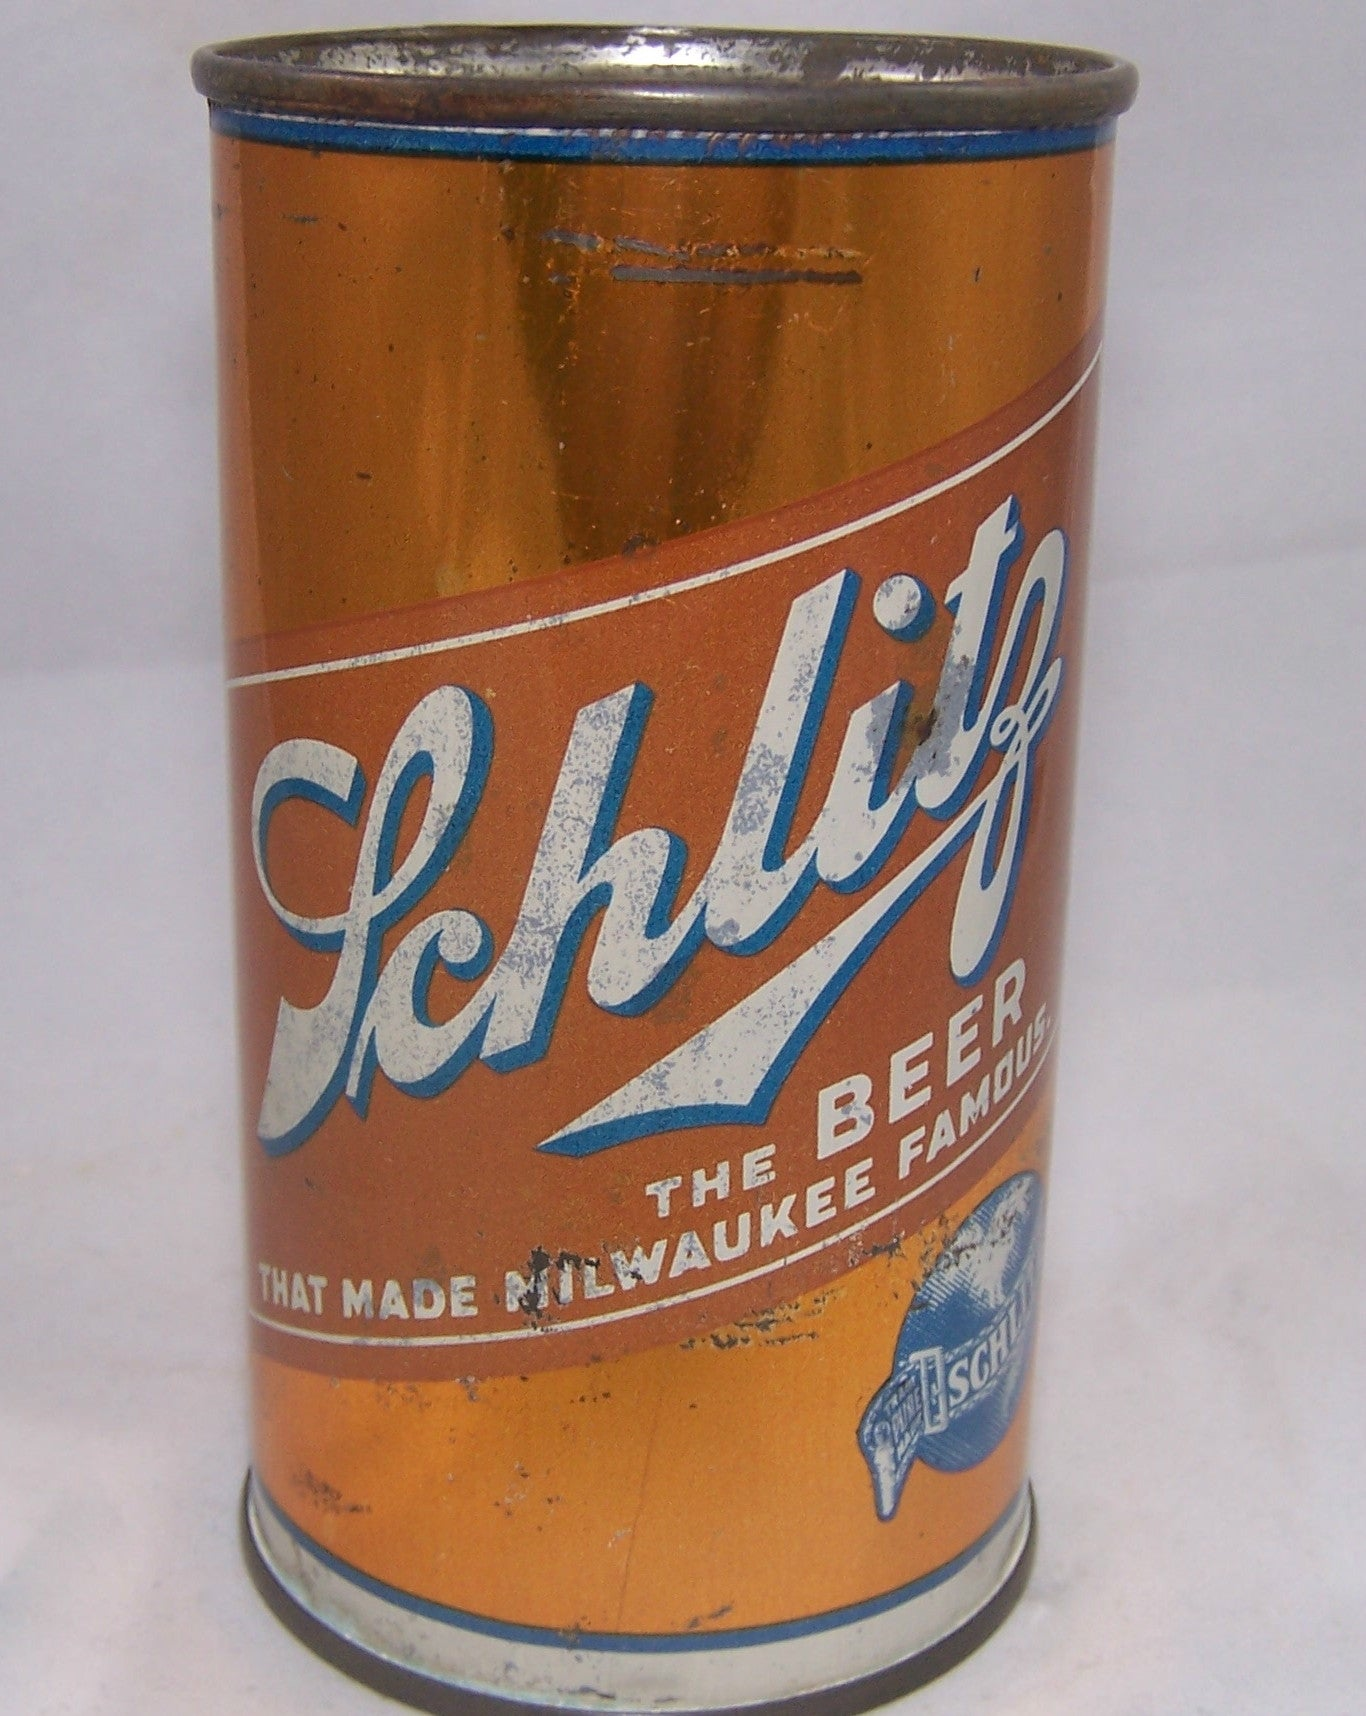 Schlitz Beer, USBC 129-15, Grade 1-/2+ Traded on 08/26/17